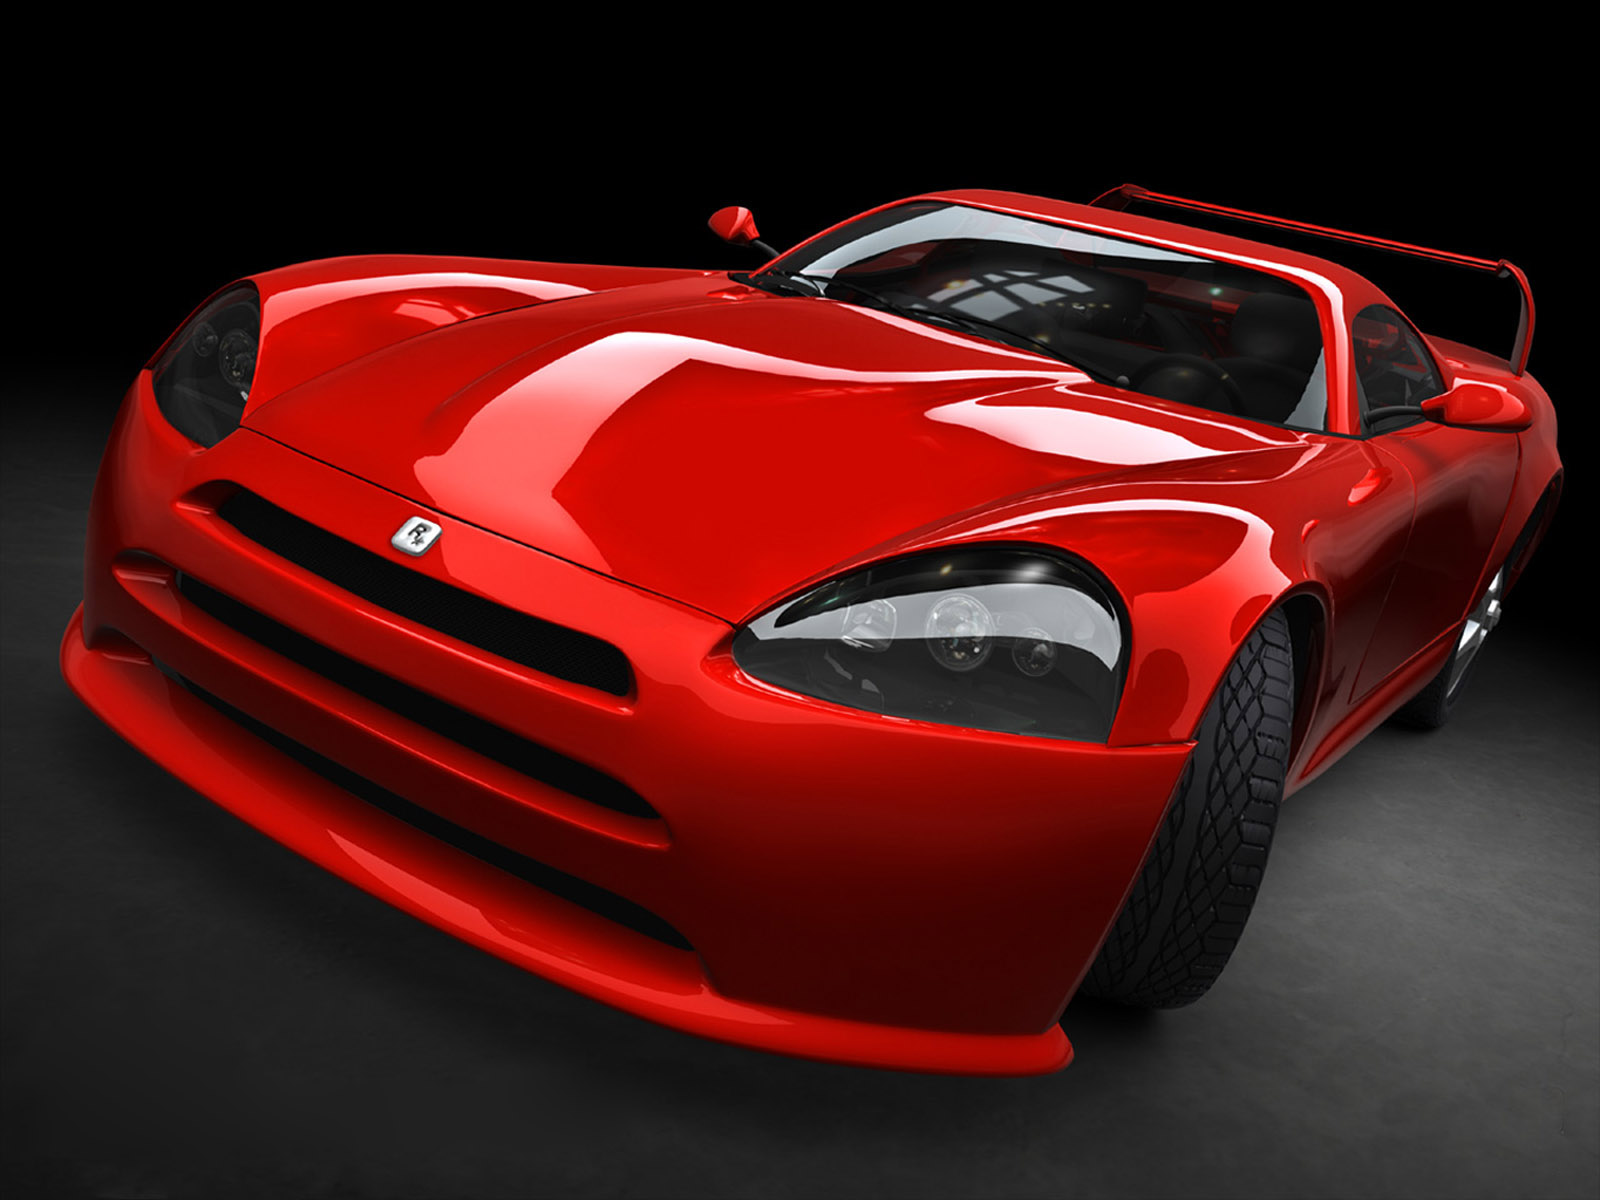 CAR SPORT: Red Cars Wallpaper